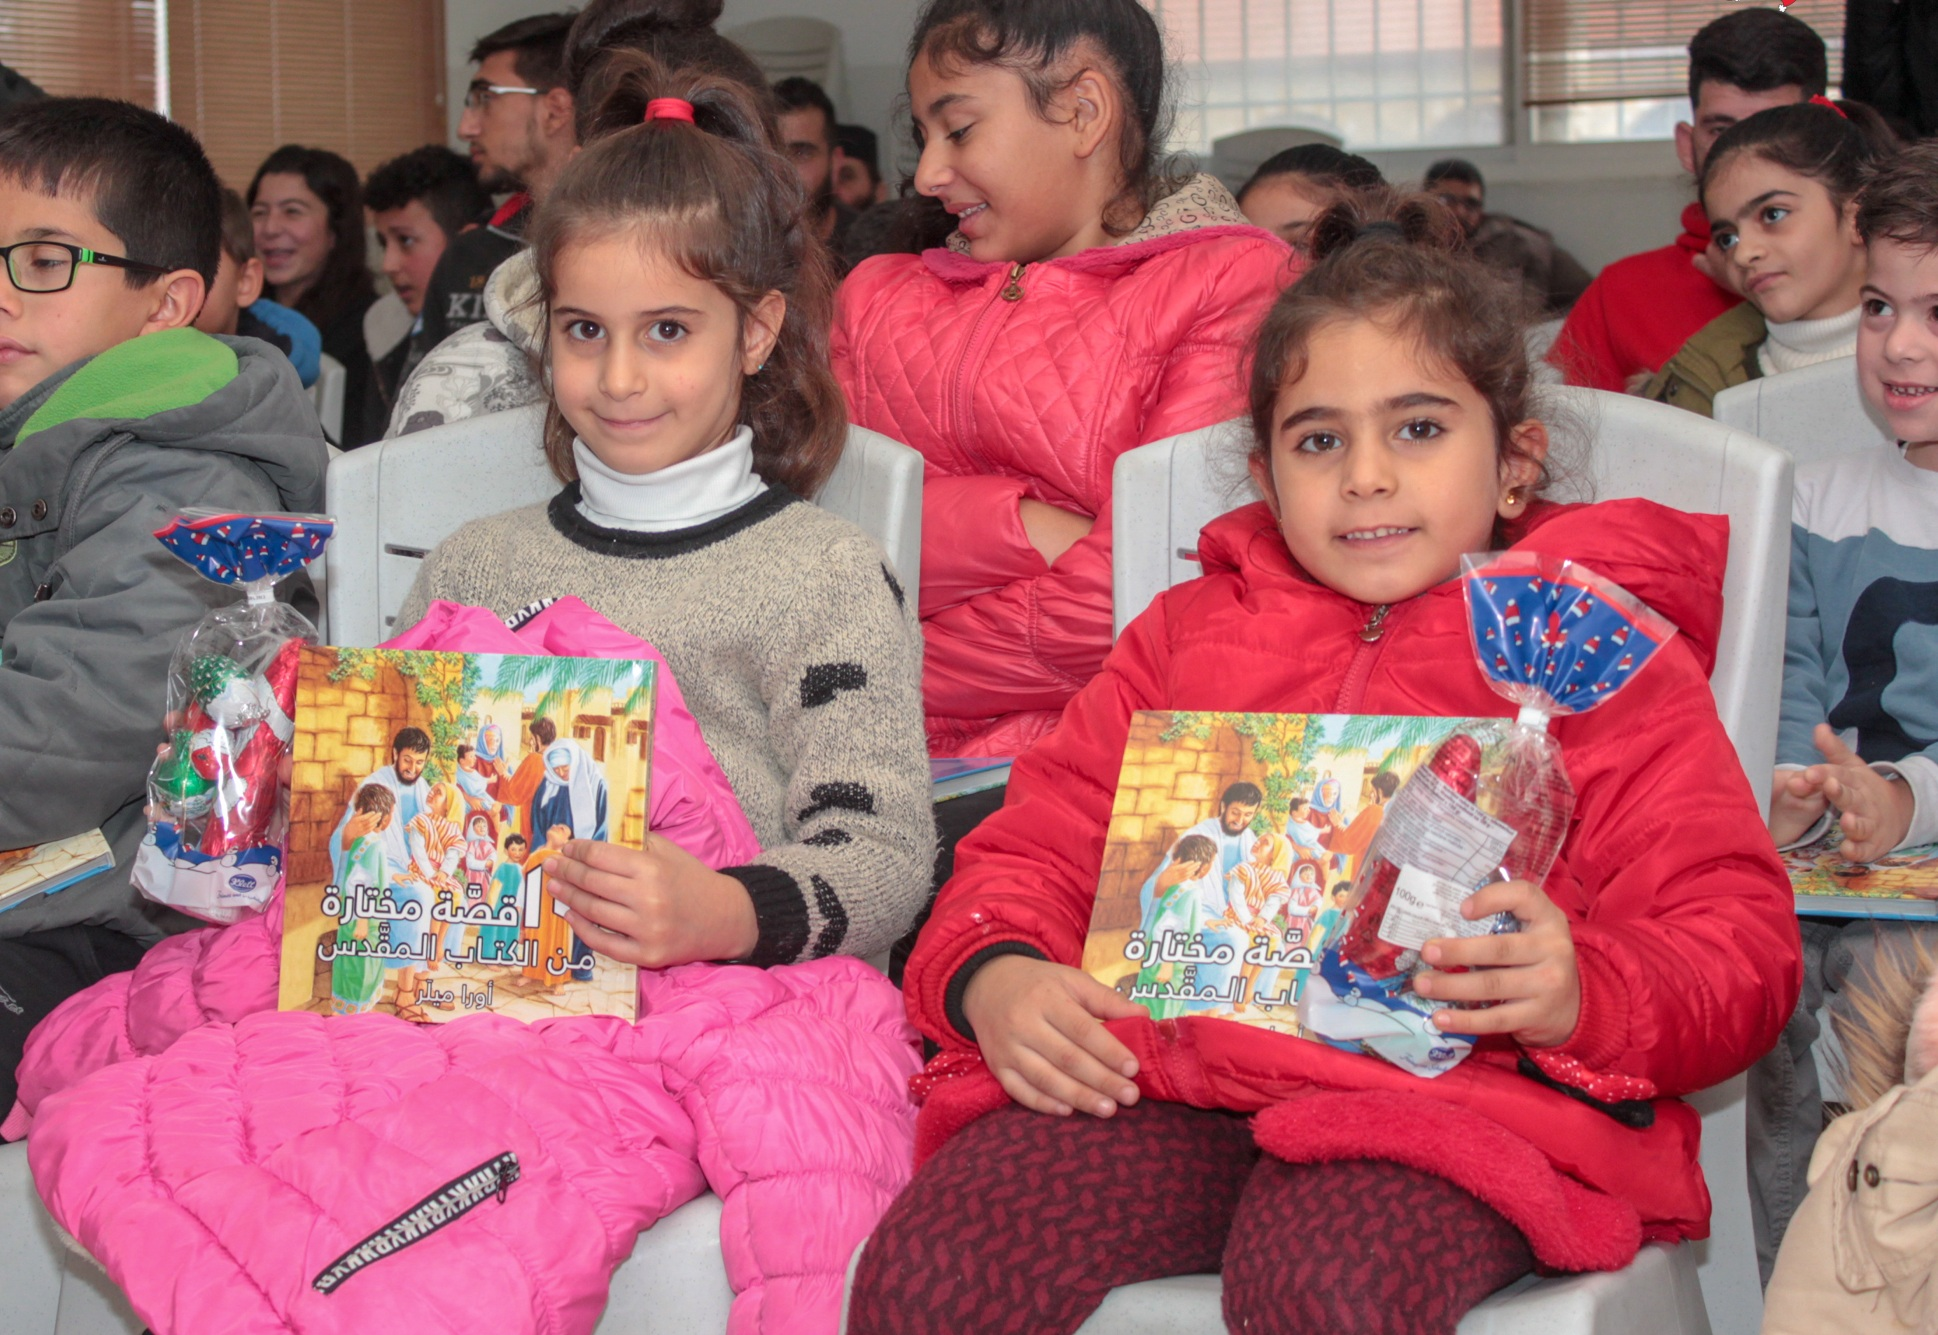 Children+with+their+Bible+book+and+a+gift+at+one+of+our+events.jpg